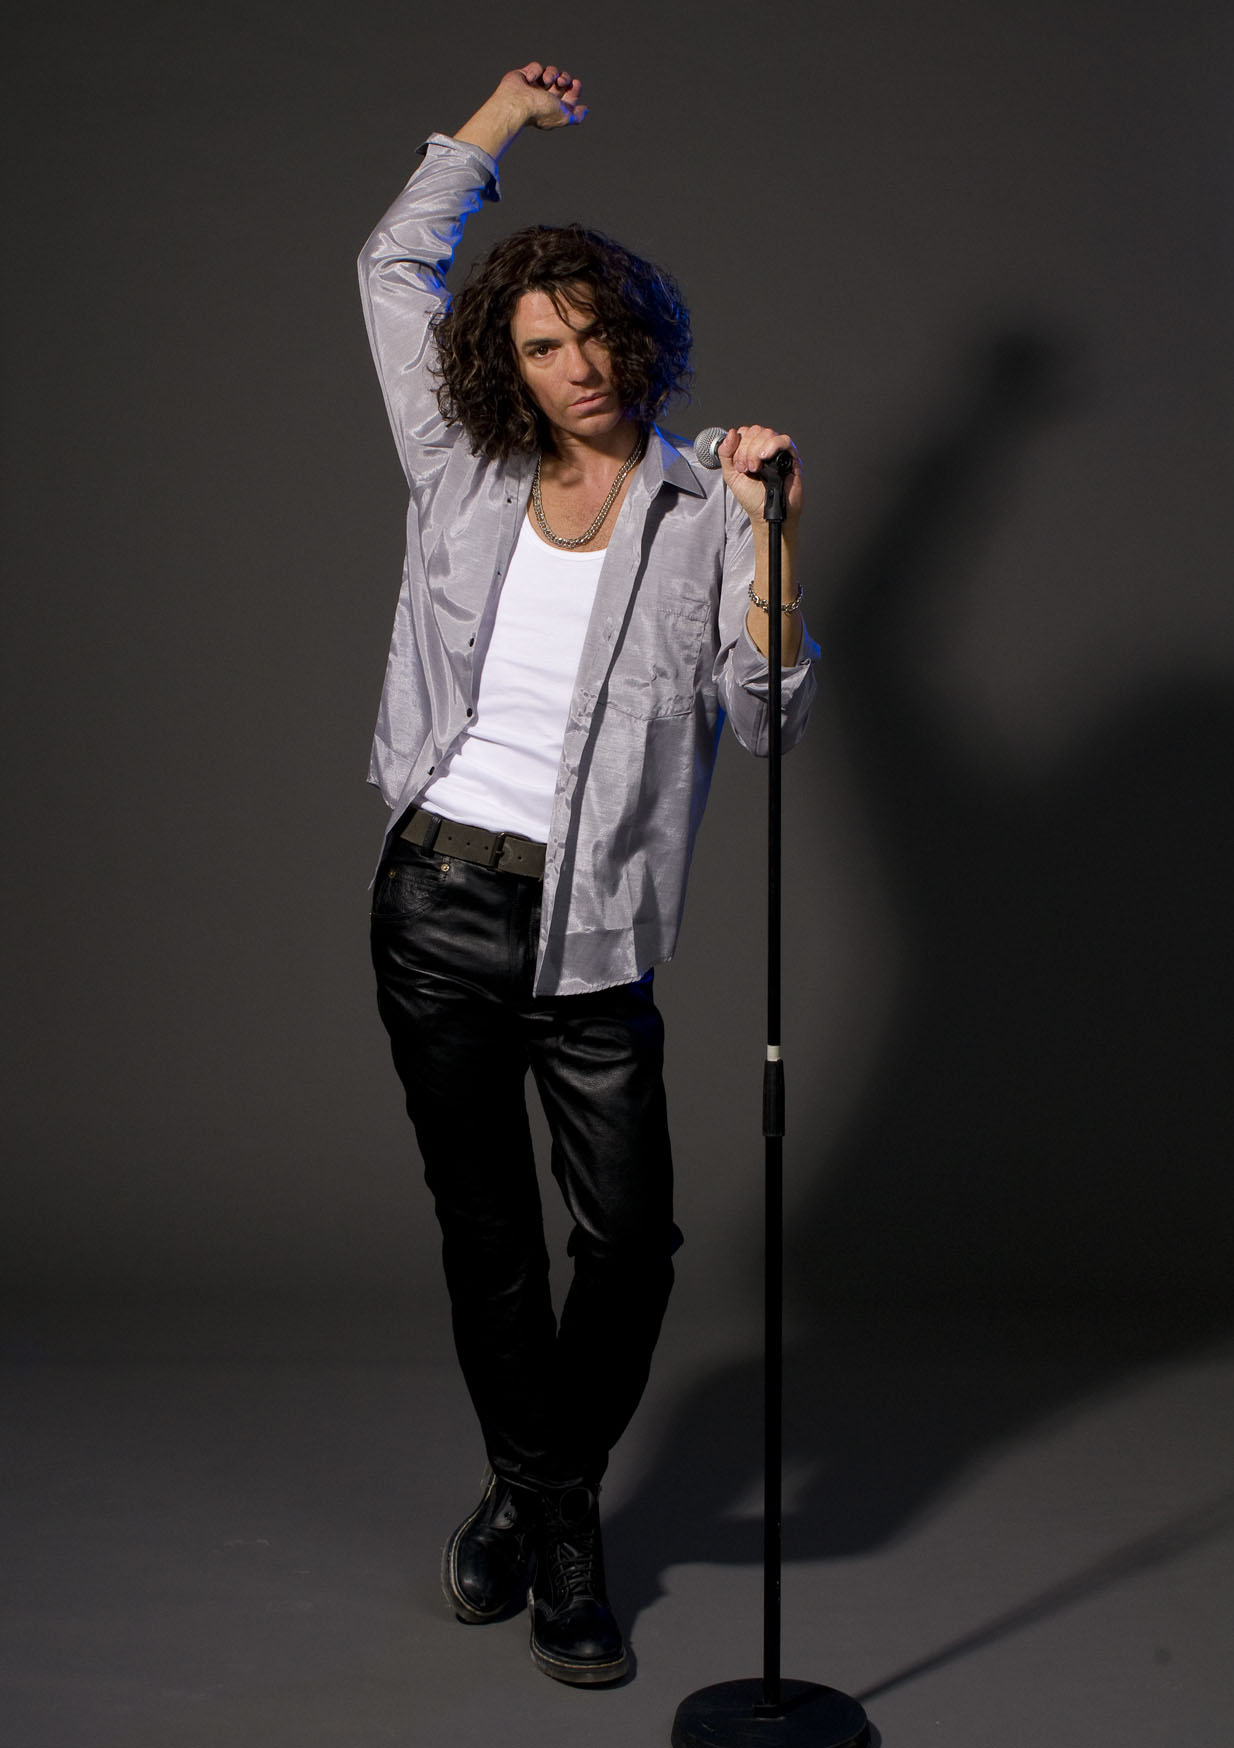 Michael Hutchence wax work and microphone